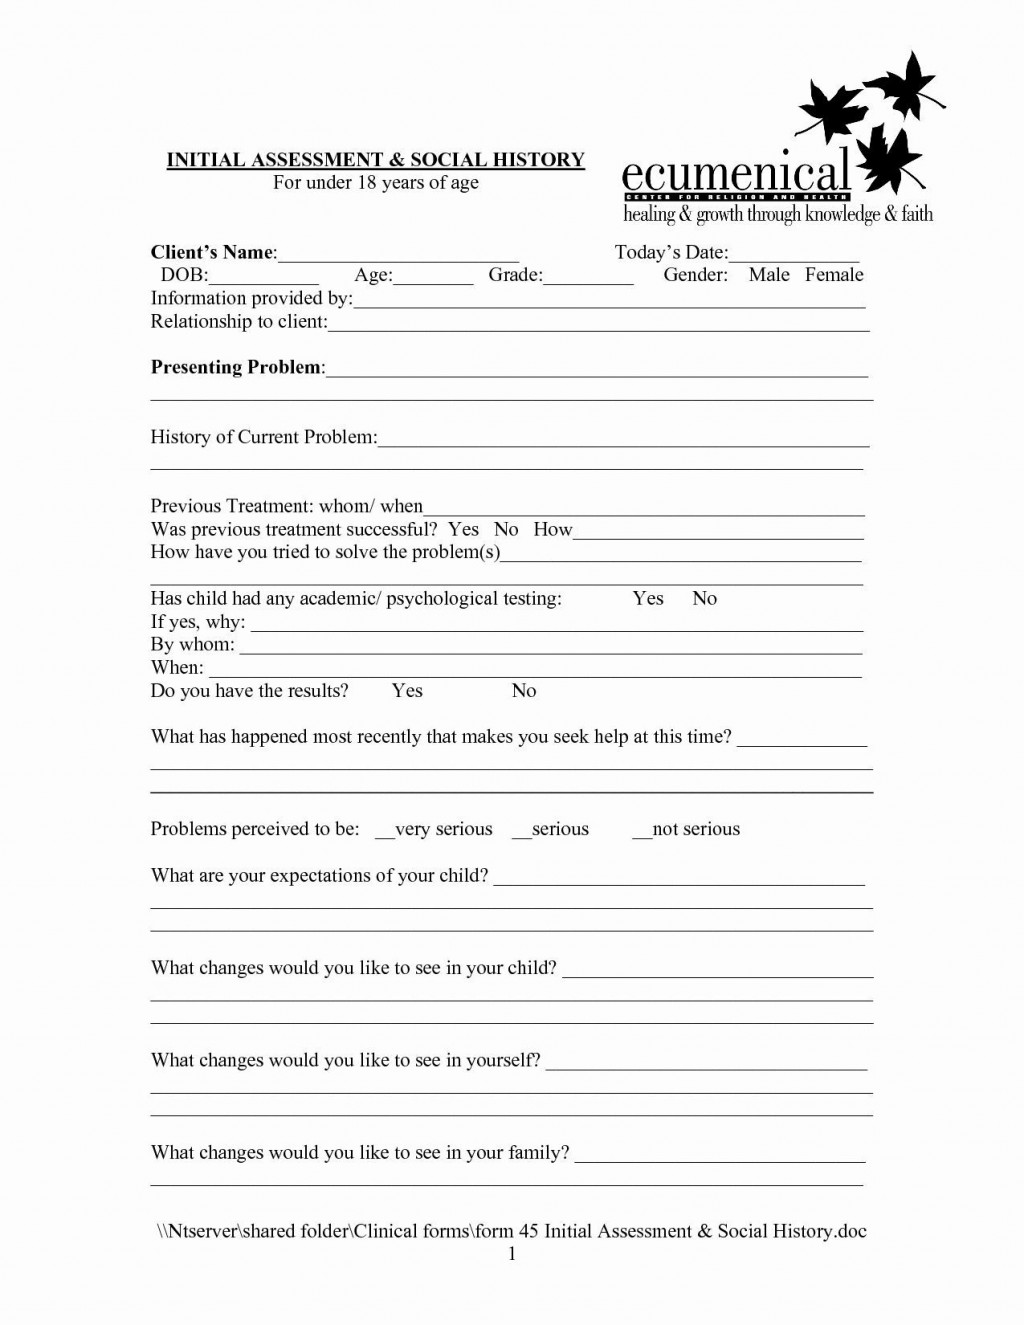 002 Amazing Counseling Intake Form Template Photo  Templates Therapy Massage FreeLarge